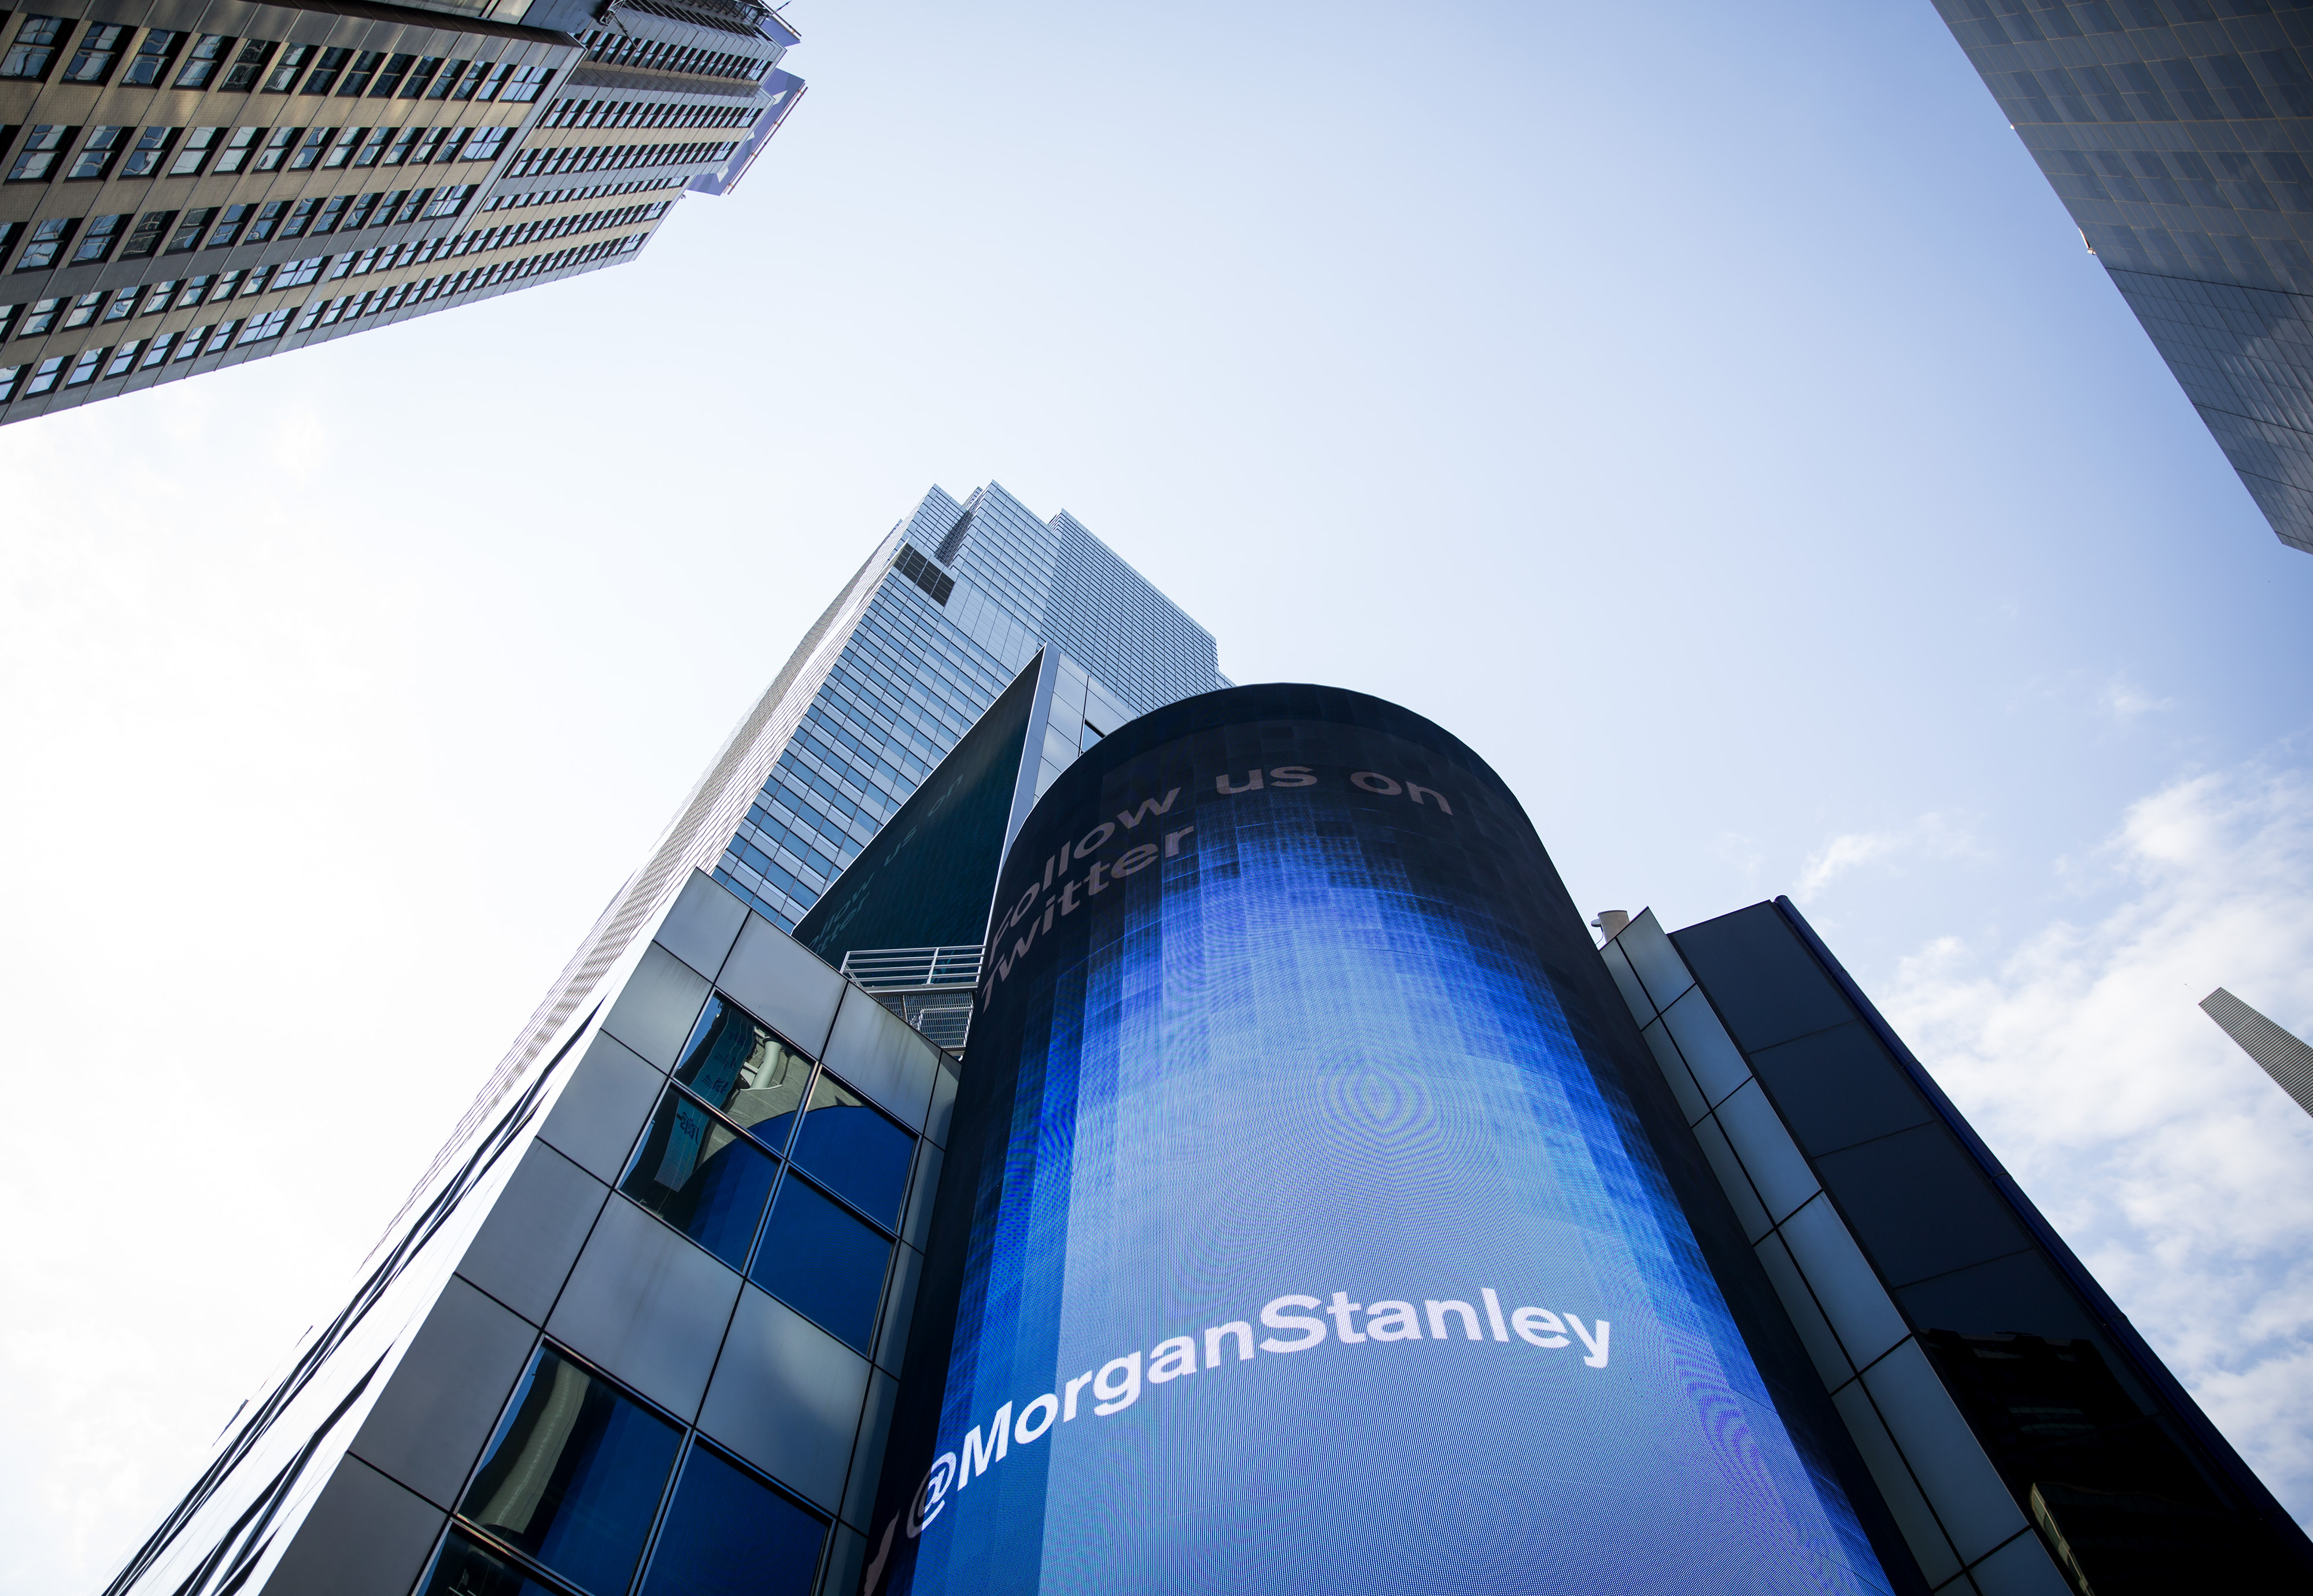 Morgan Stanley Teams With Tech to Improve Wealth Management Business